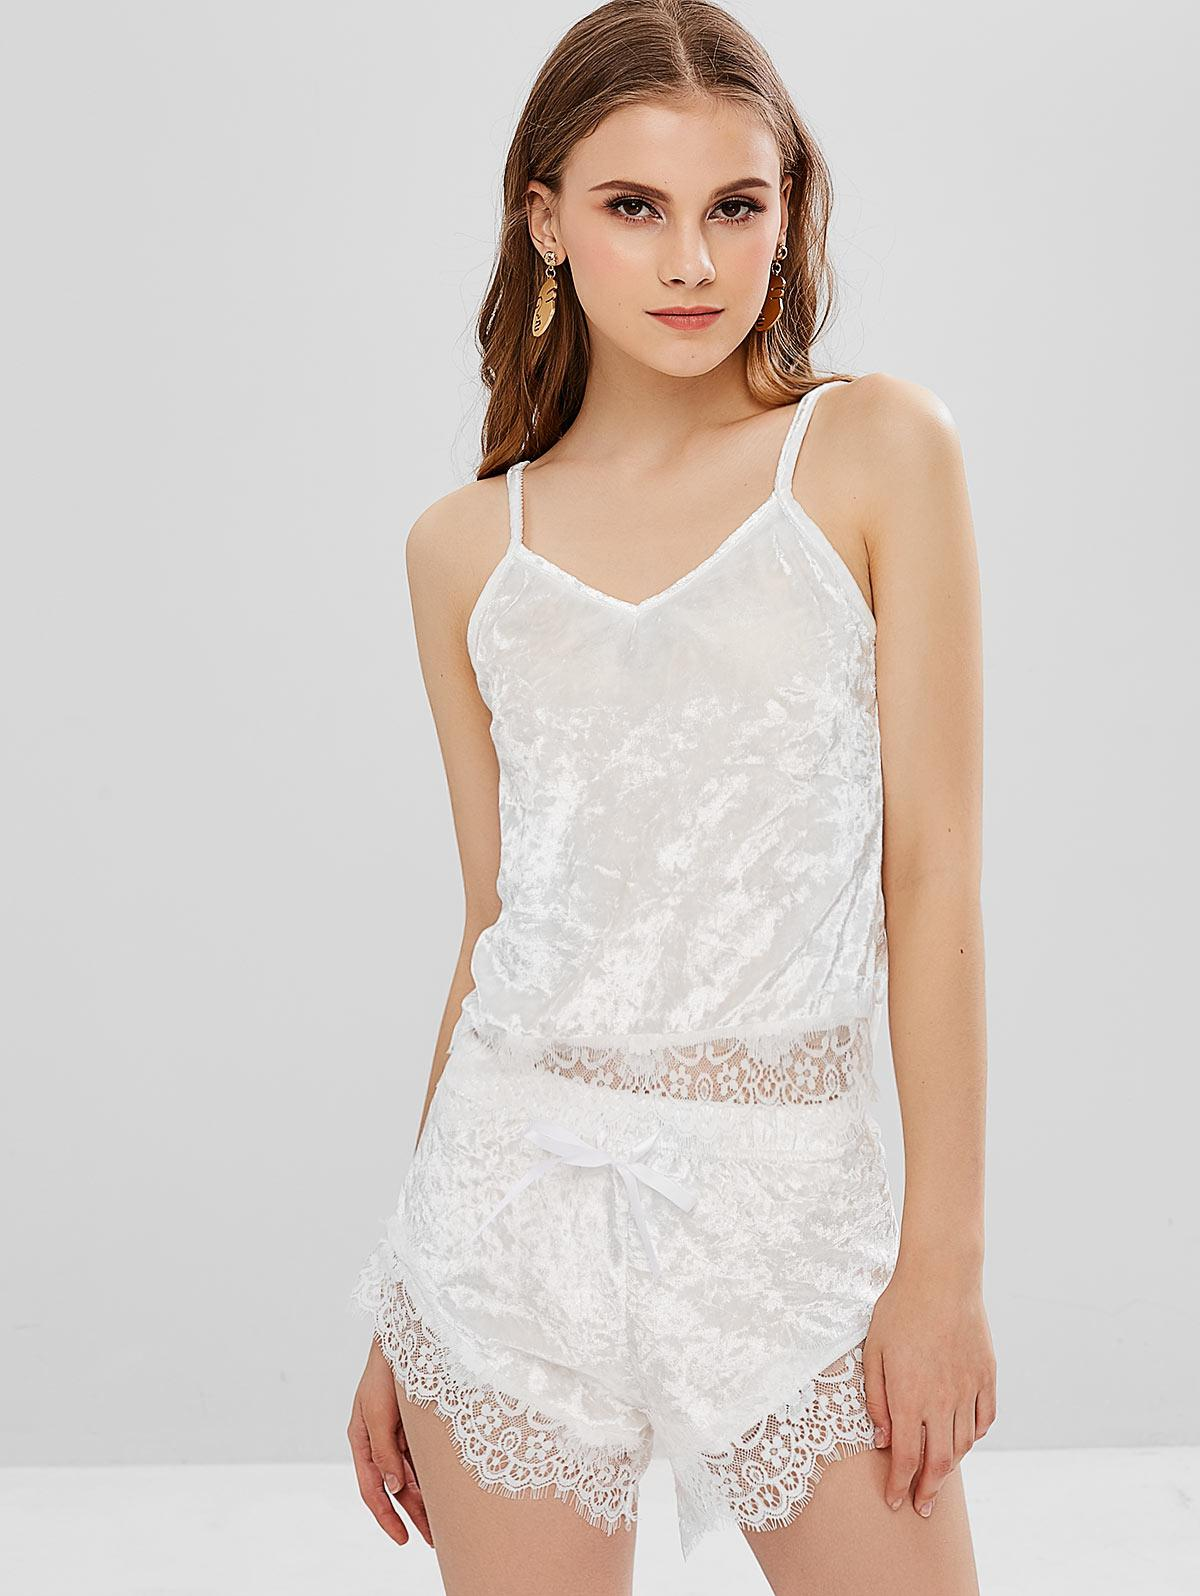 Lace Velvet Cami Top and Shorts Two Piece Set